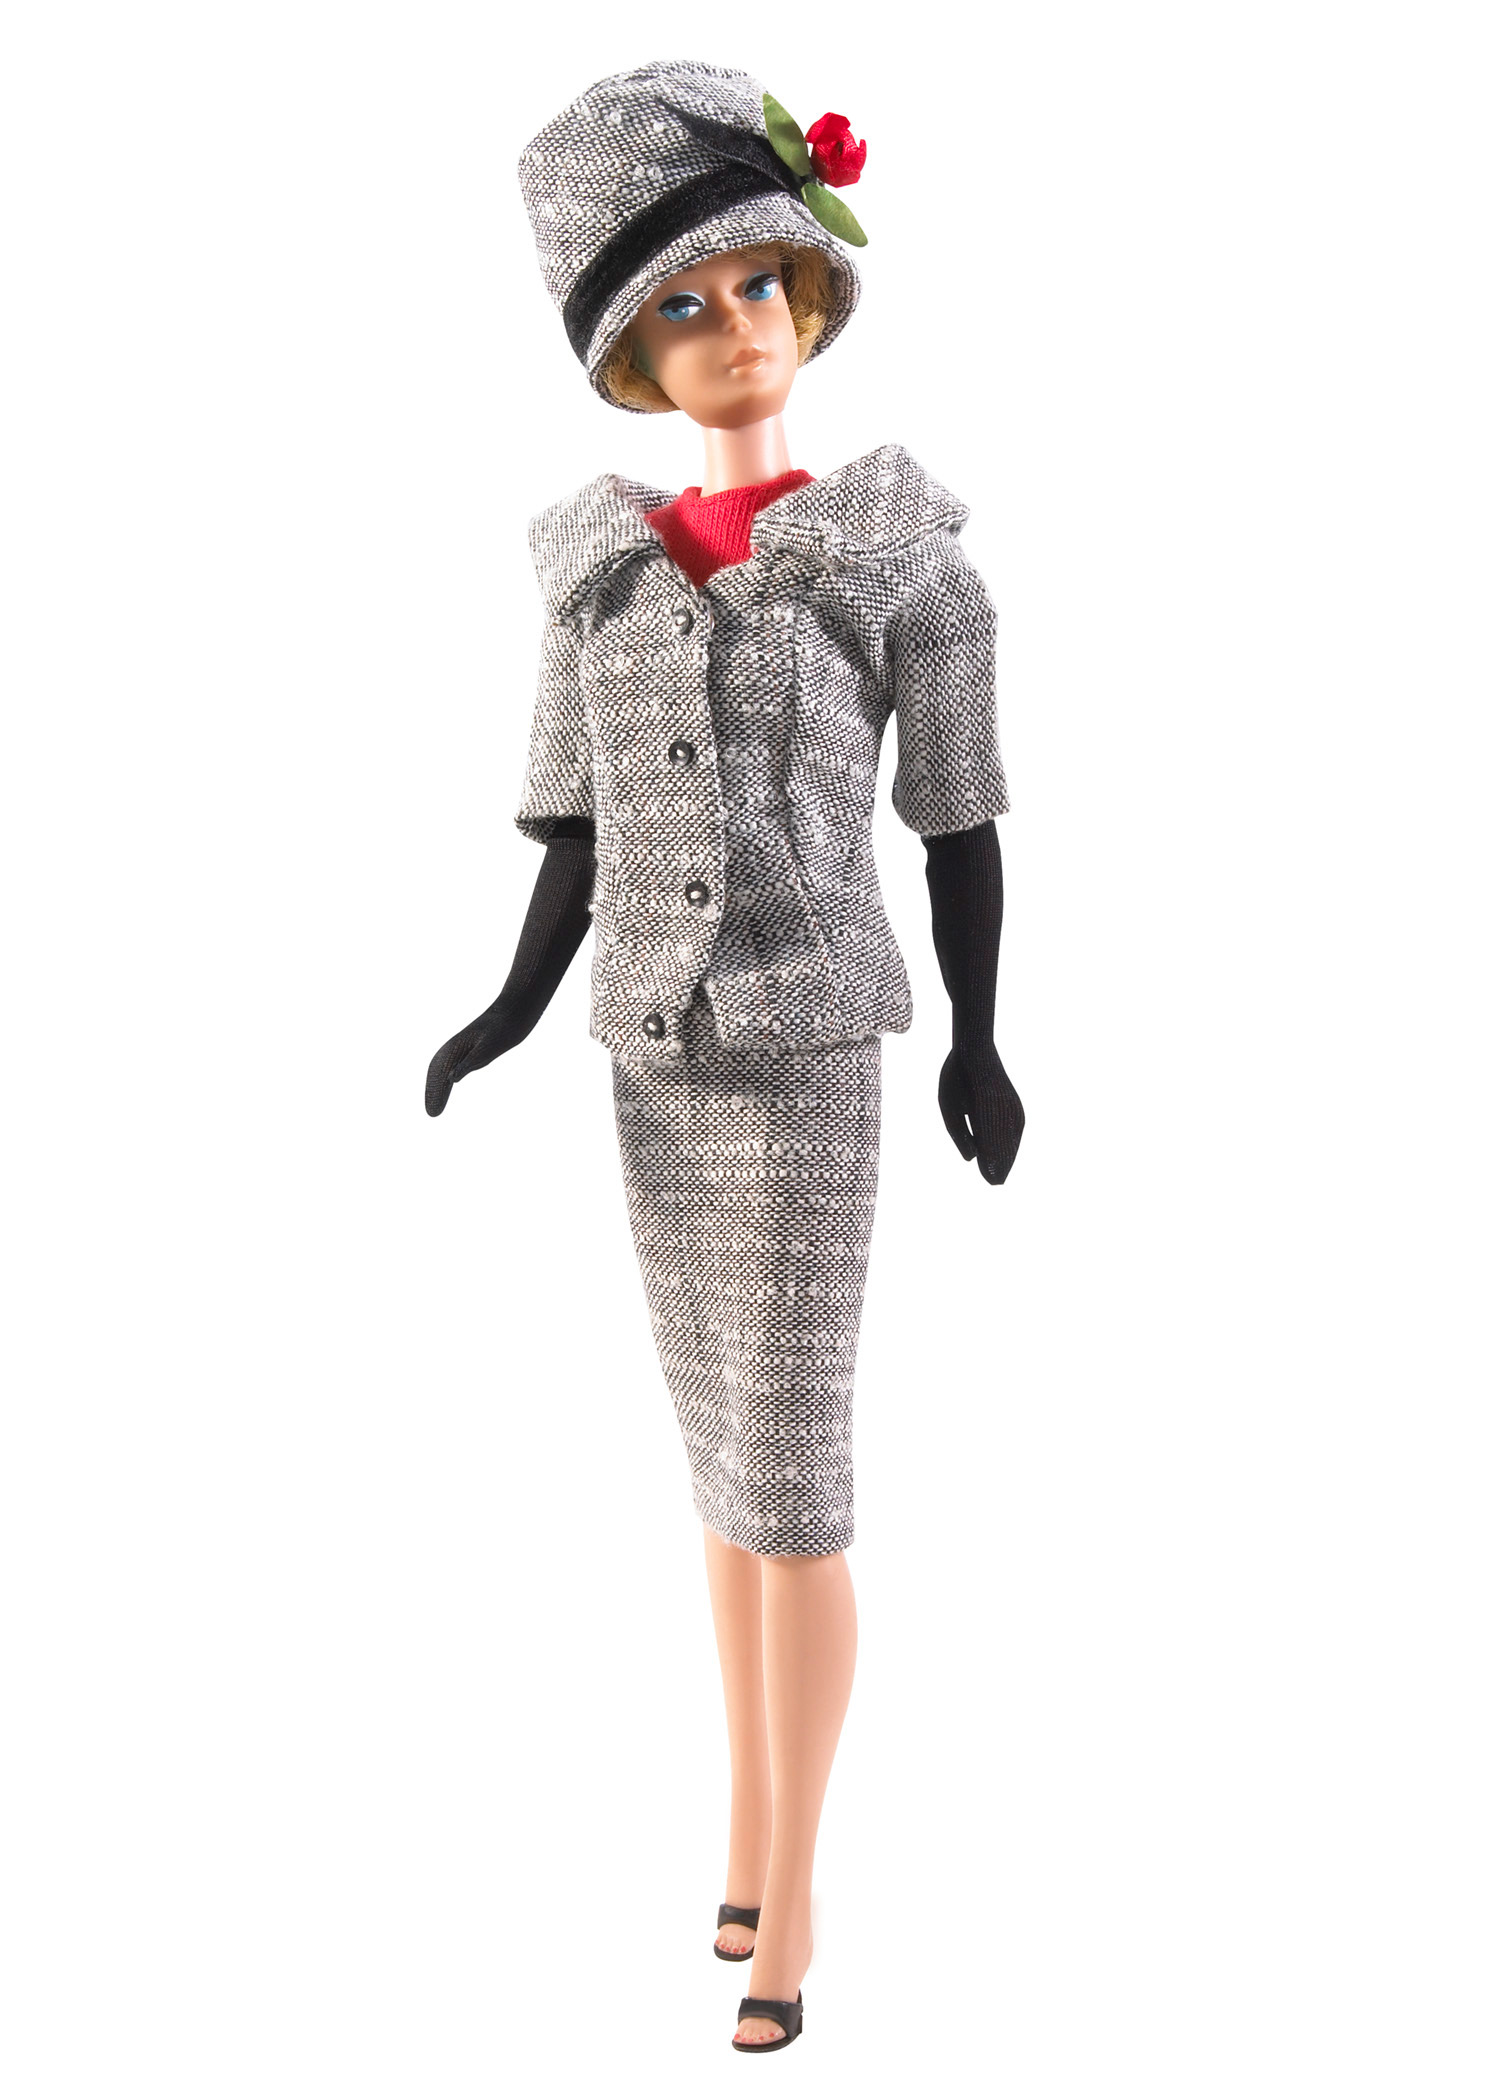 The Fresh Prince Of Bel Air additionally Latest Oscar De La Renta Bridal Barbie Gown Vision likewise Rooney Mara Reveals Beauty Secrets Wouldnt Want Doll Face moreover Barbie moreover The Worlds Largest Barbie Museum. on oscar de la renta 2016 doll